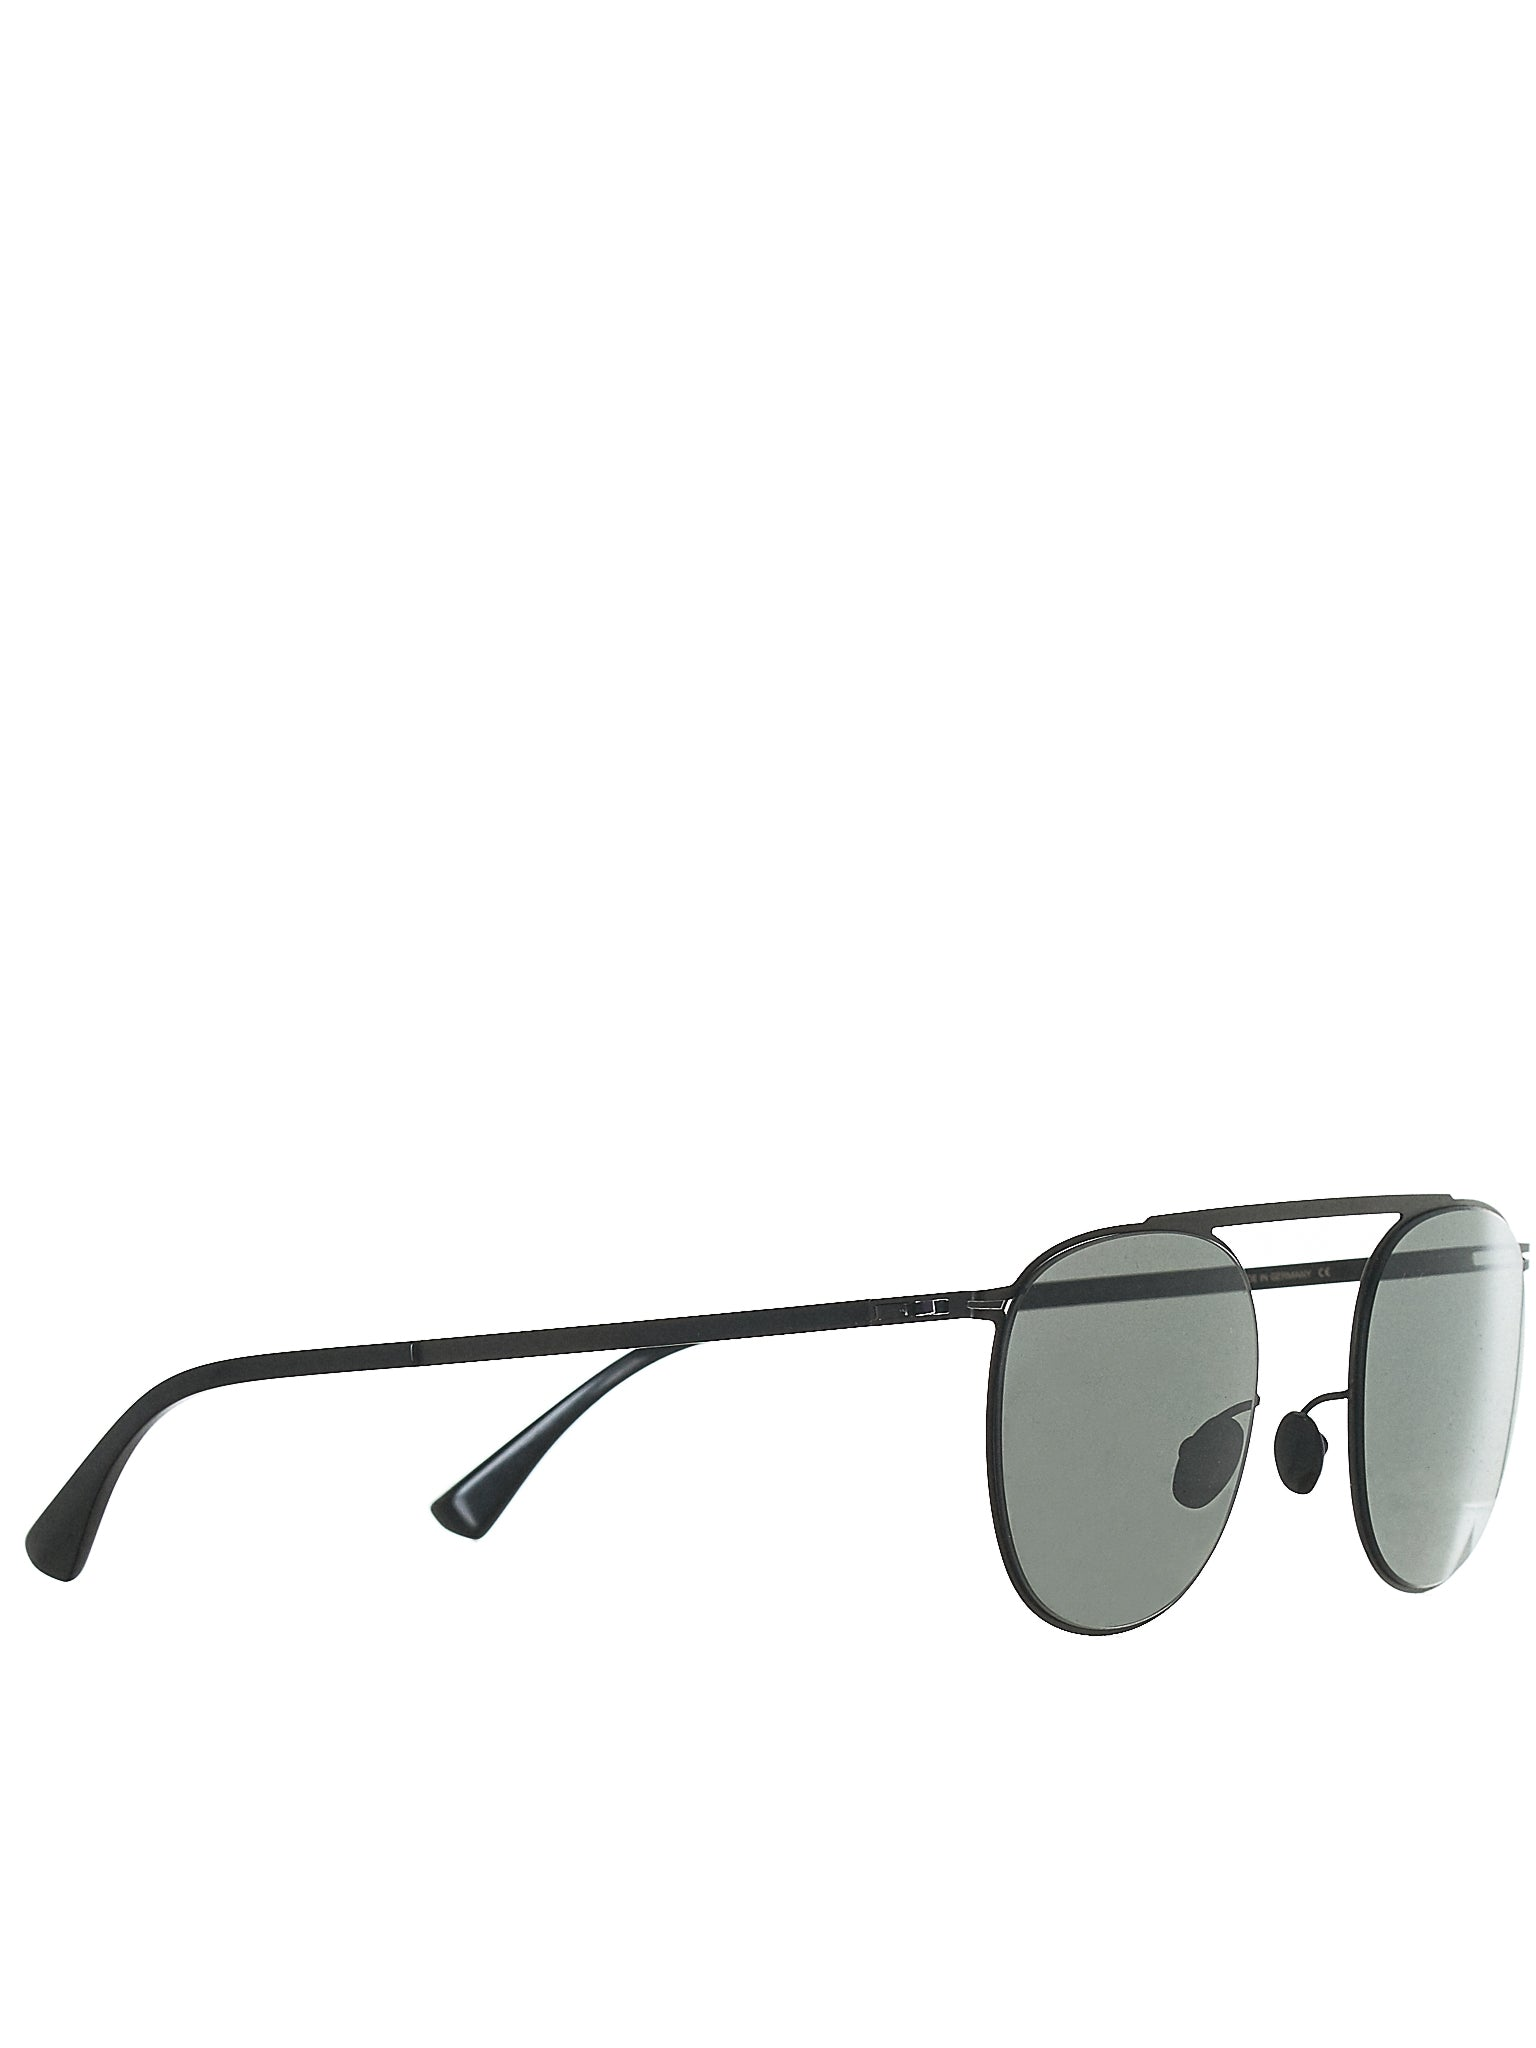 'Erling' Aviator Sunglasses (ERLING-BLACK-DARKGREY-SOLID)